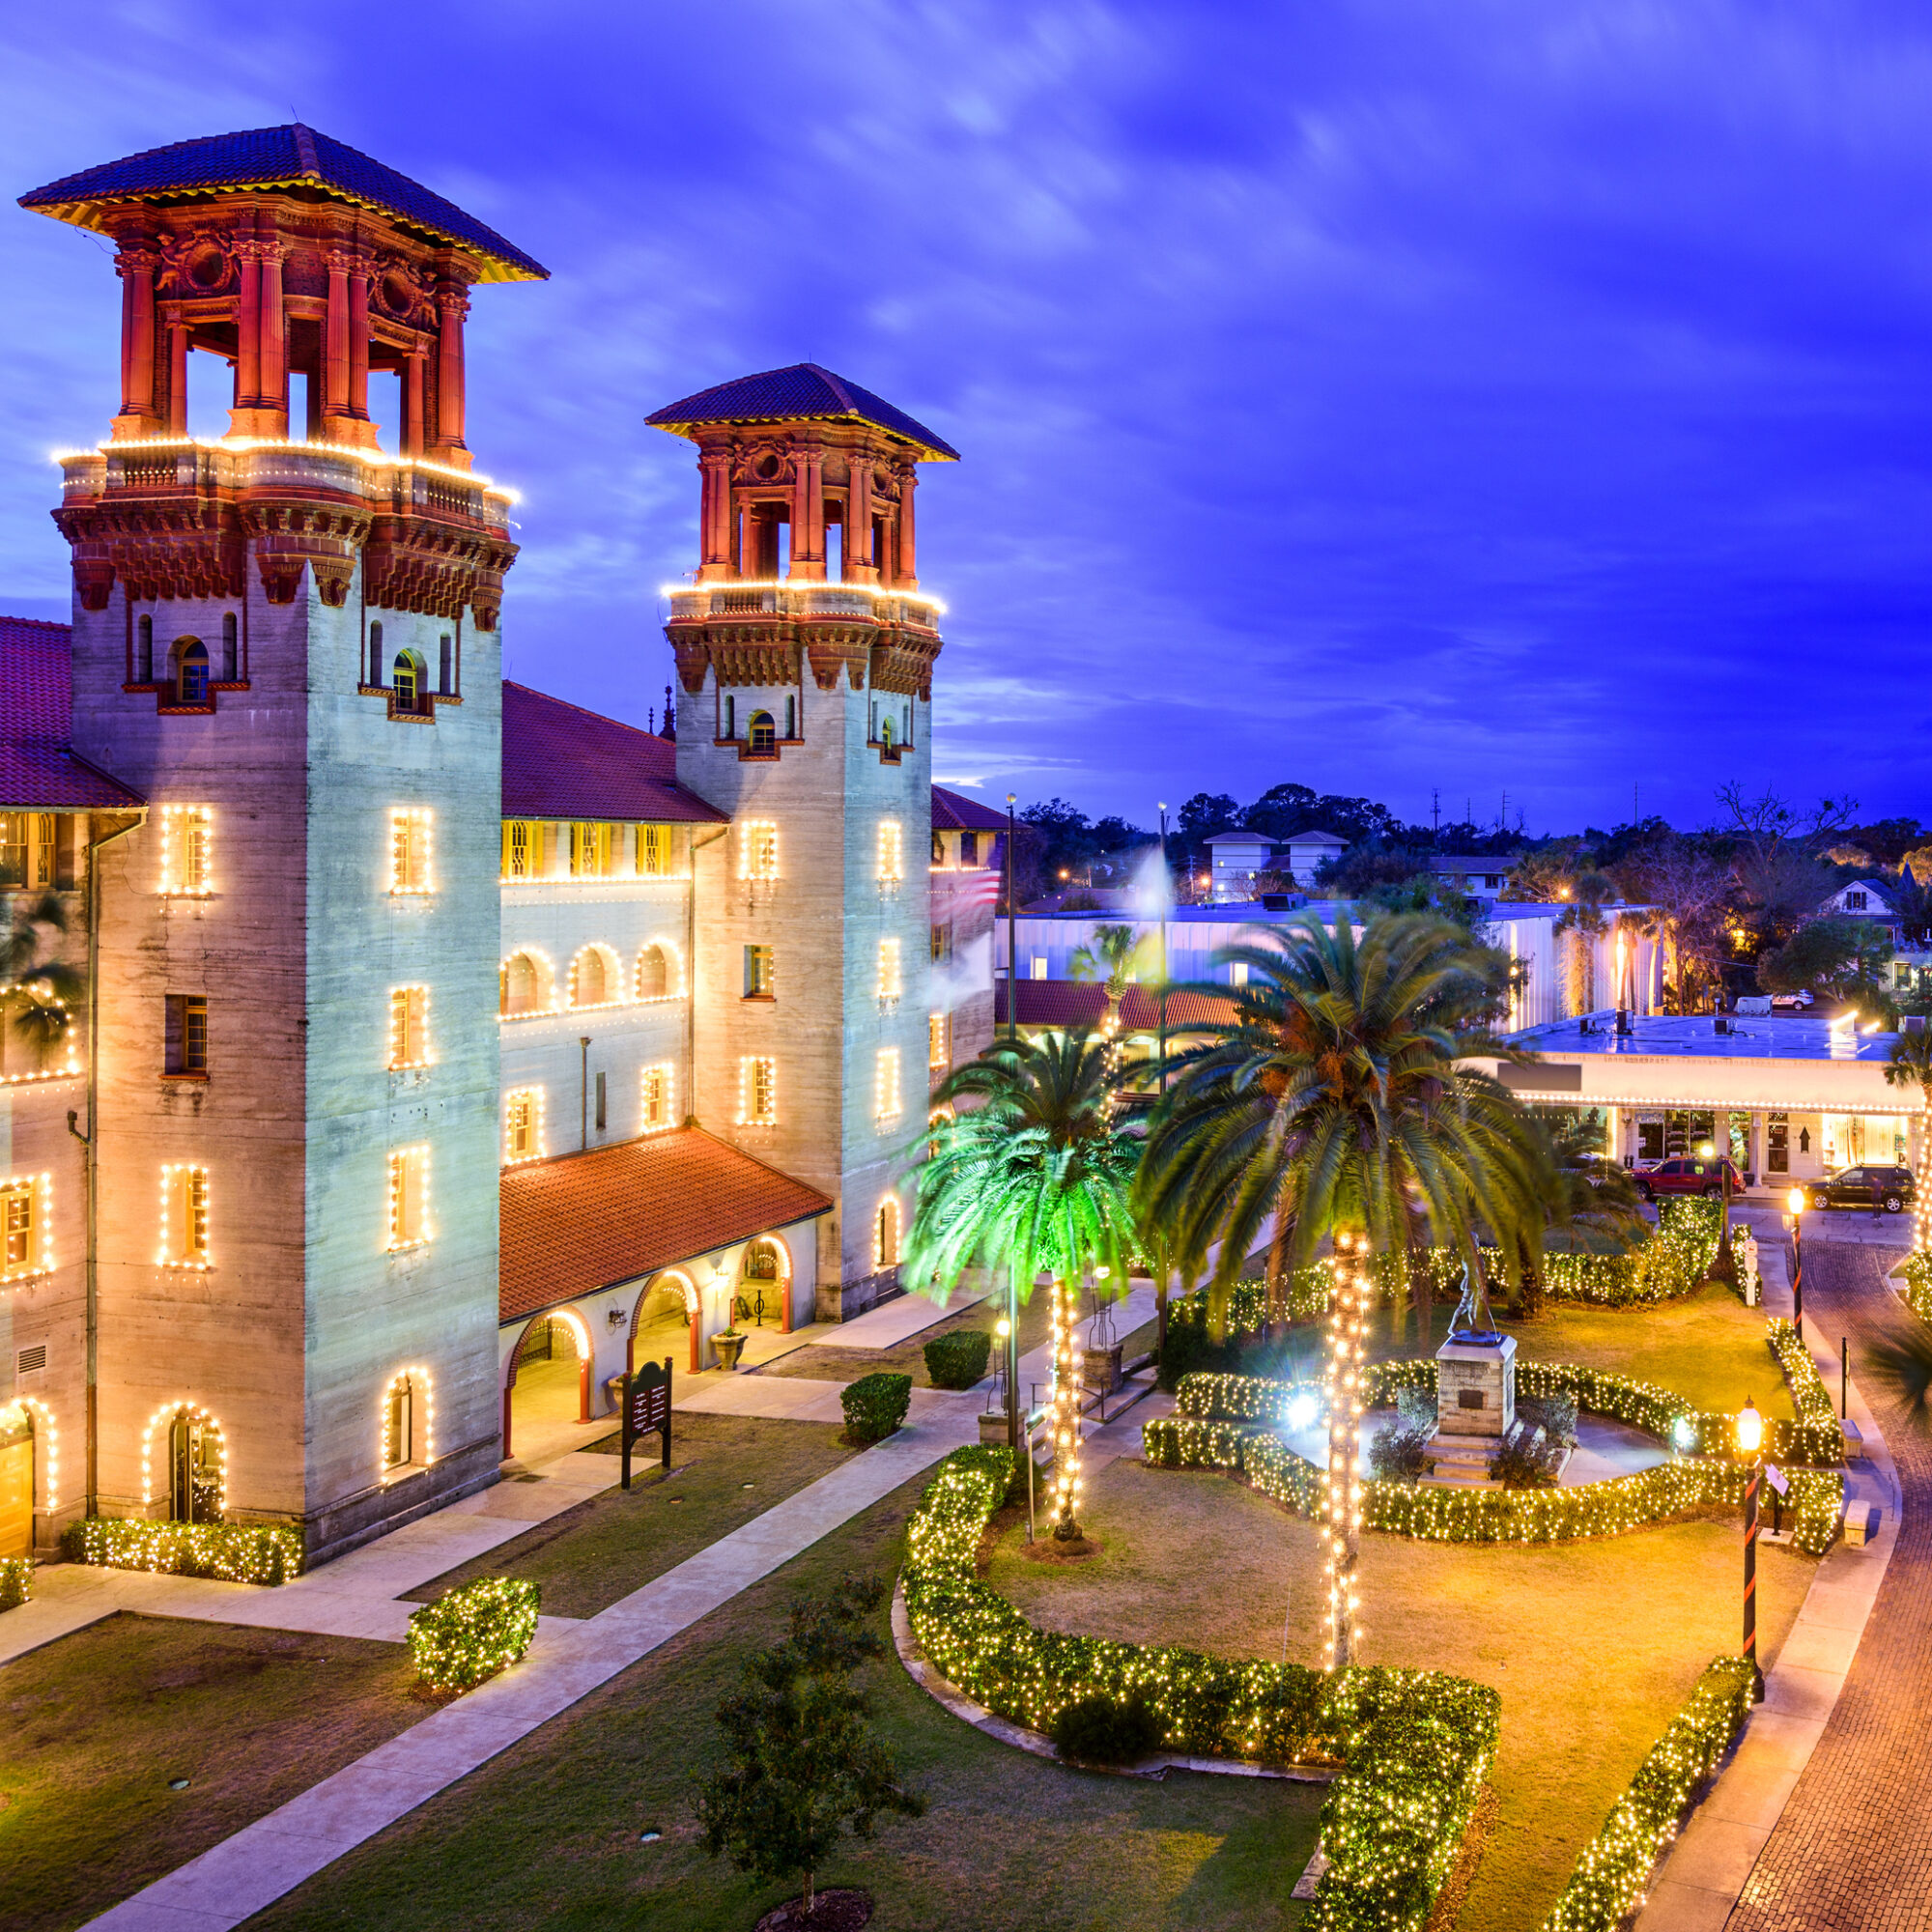 St. Augustine's Night of Lights during Christmas time.